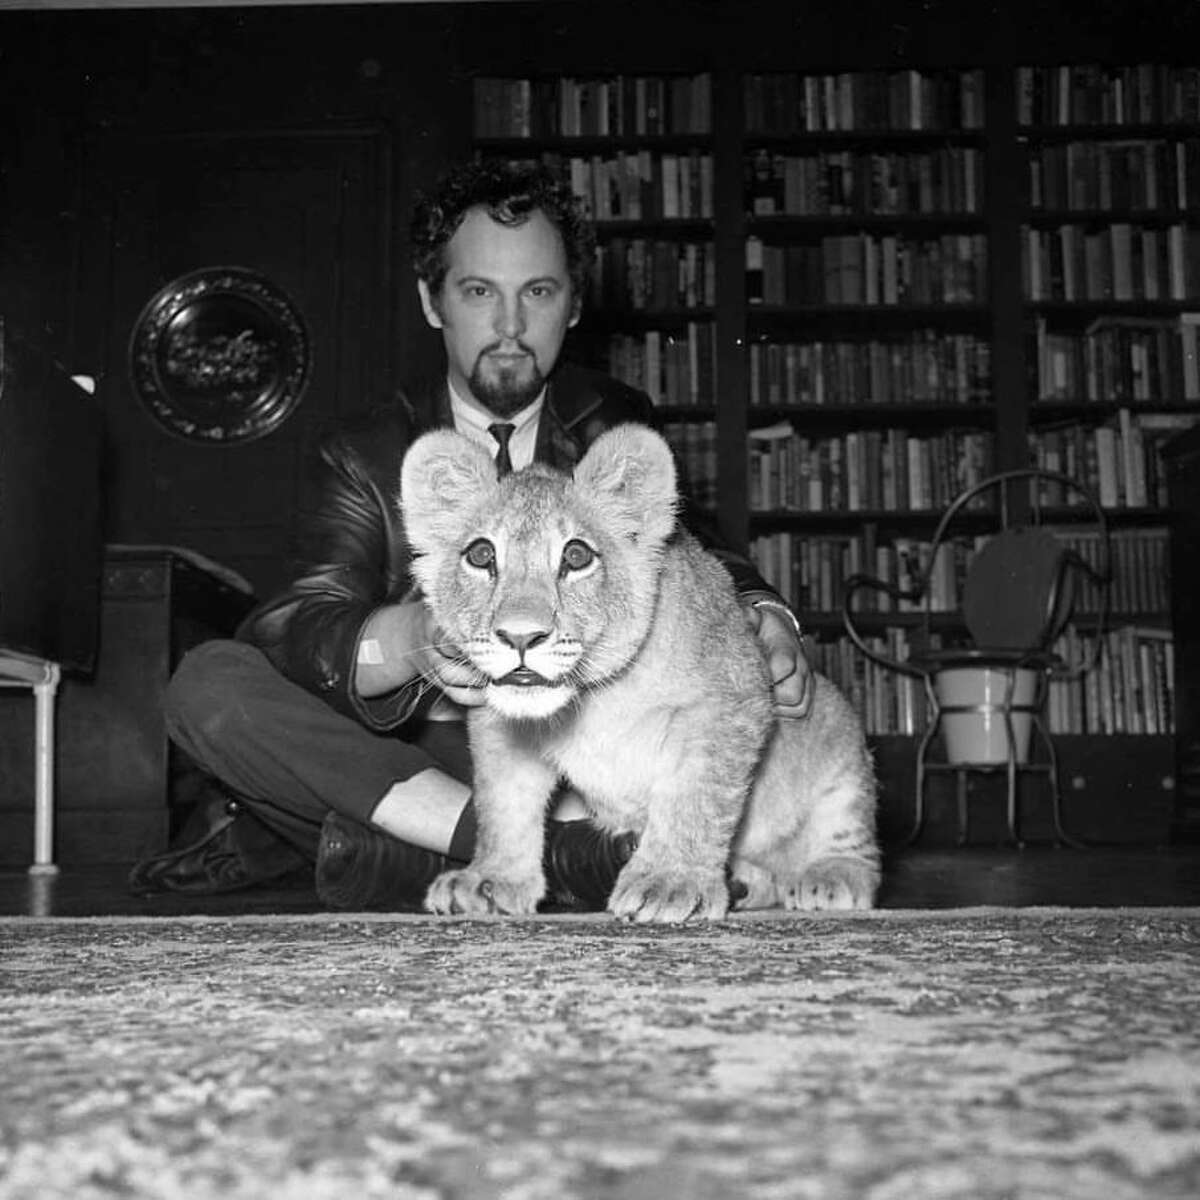 Anton Szandor LaVey and his lion cub photographed in the William Westerfeld House.